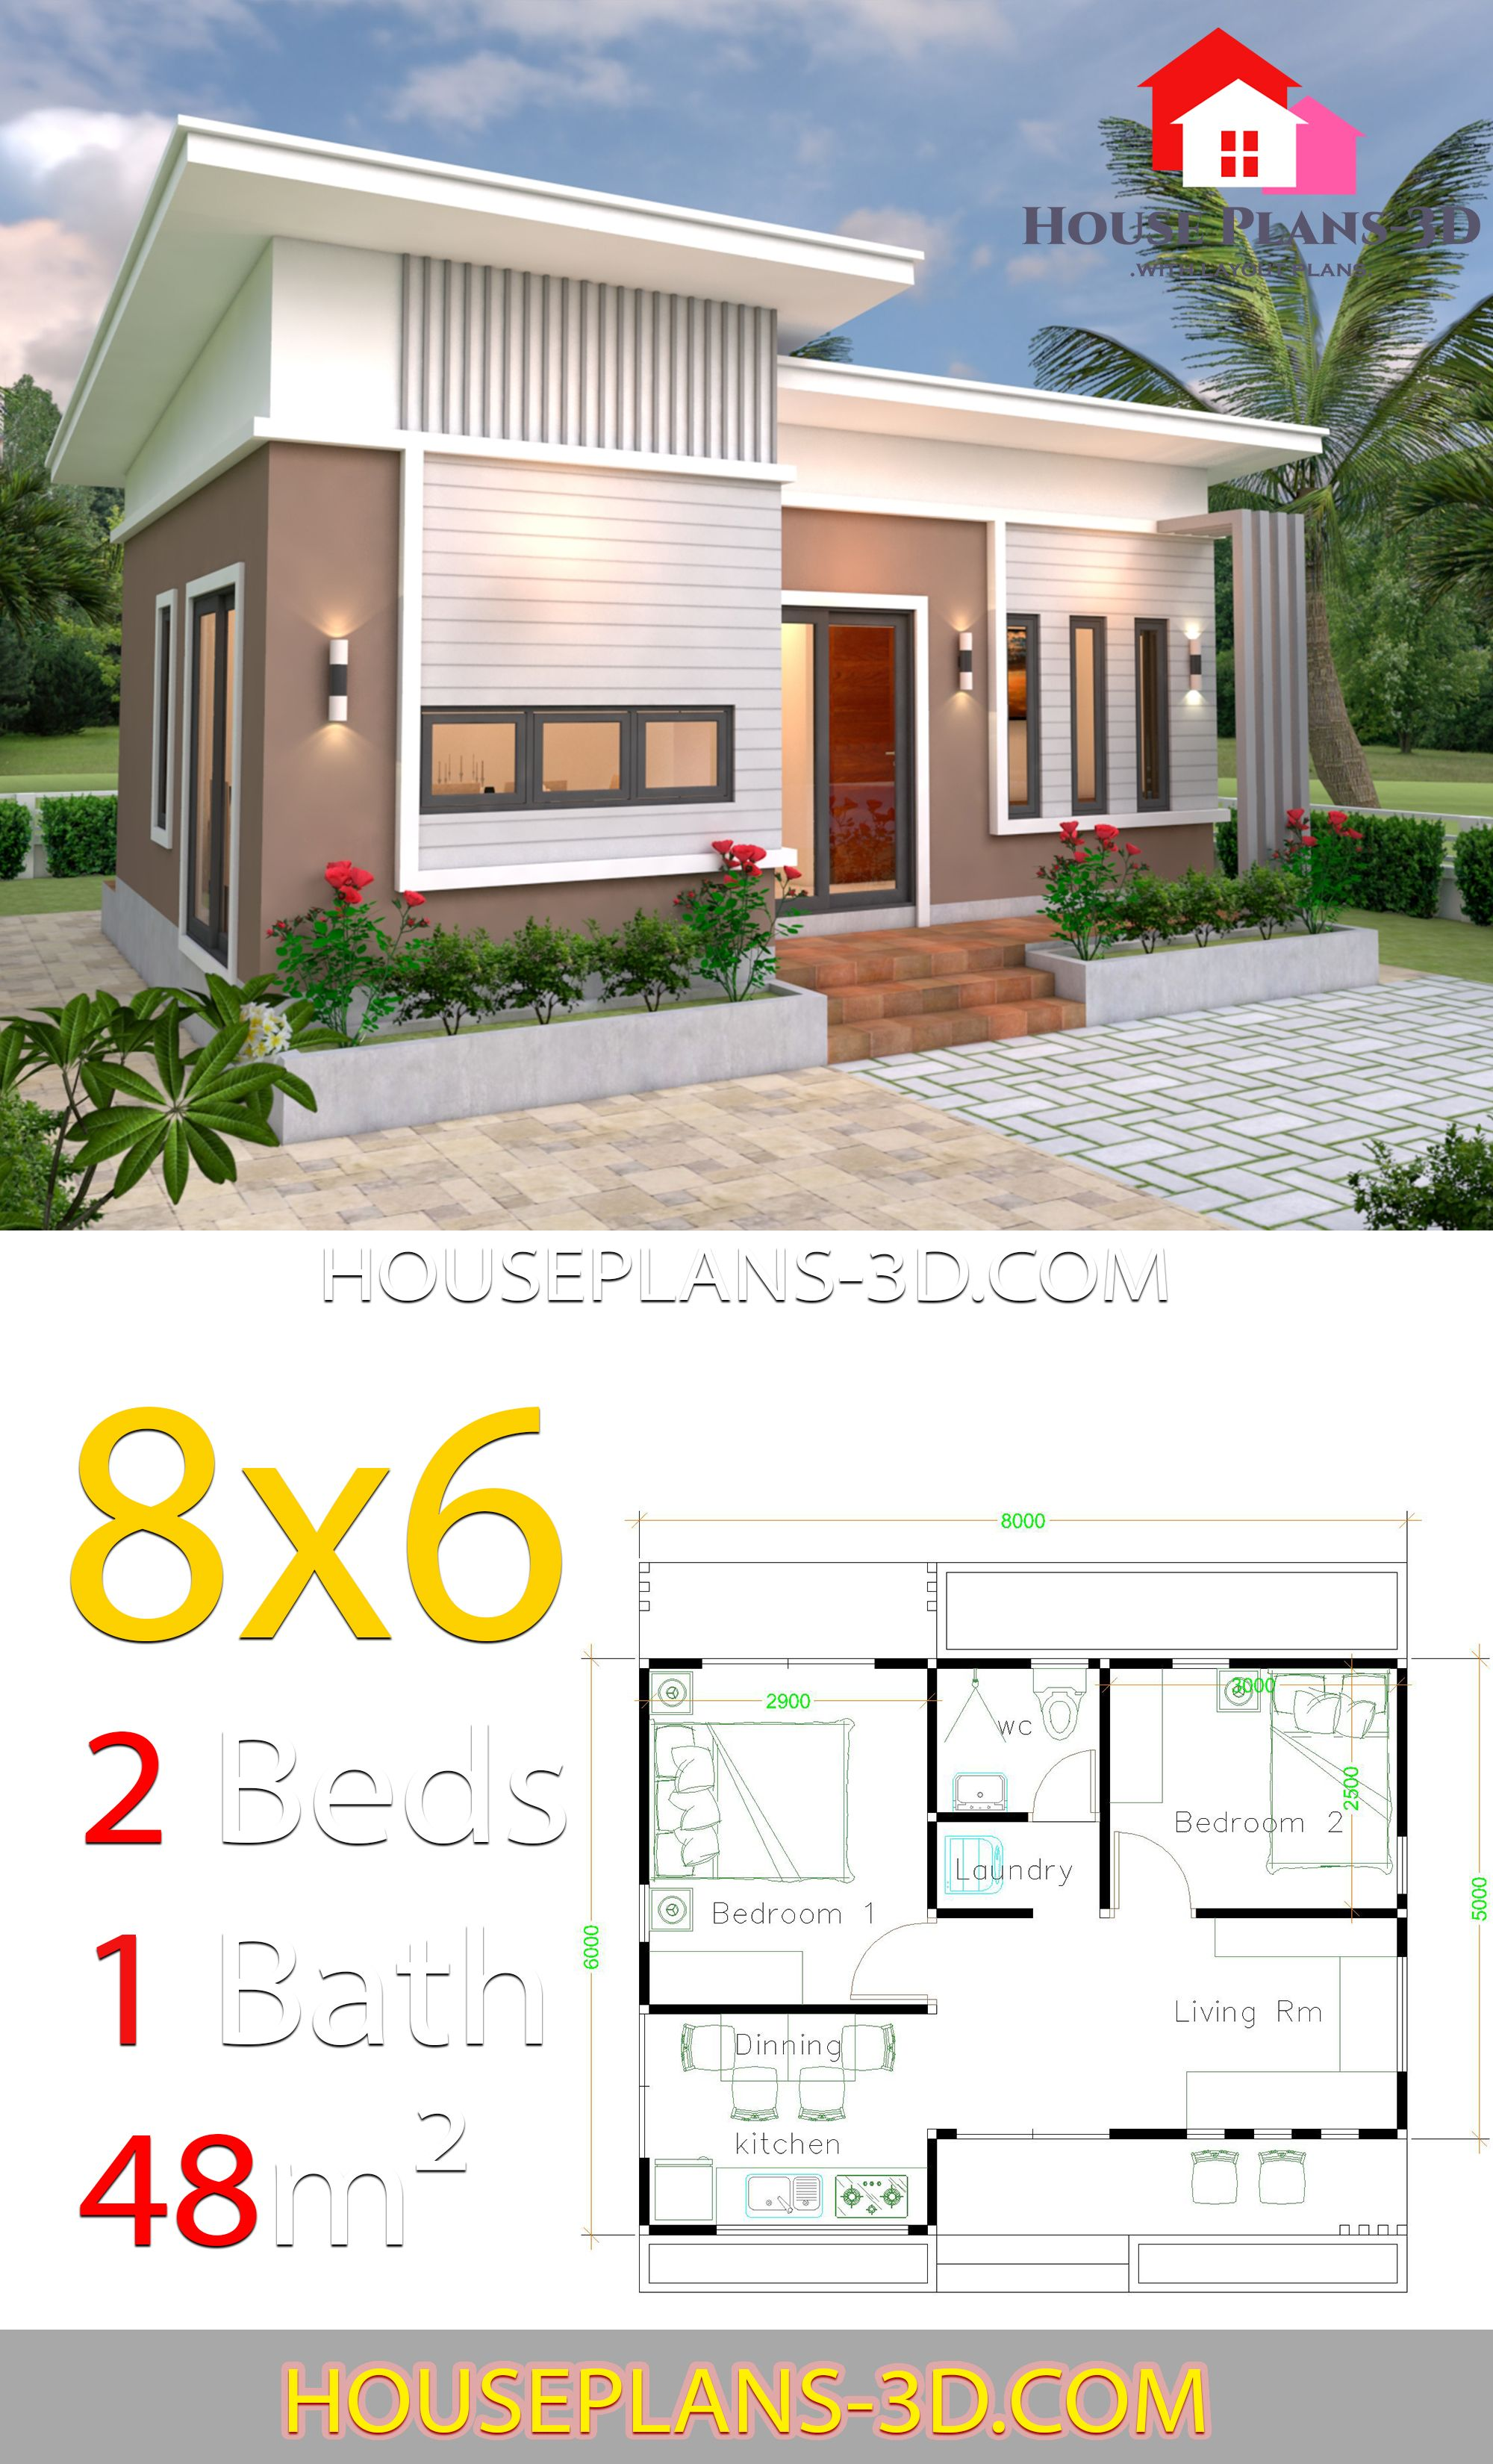 House Plans 8x6 With 2 Bedrooms Slope Roof House Plans 3d In 2020 Flat Roof House House Plans Small House Design Plans